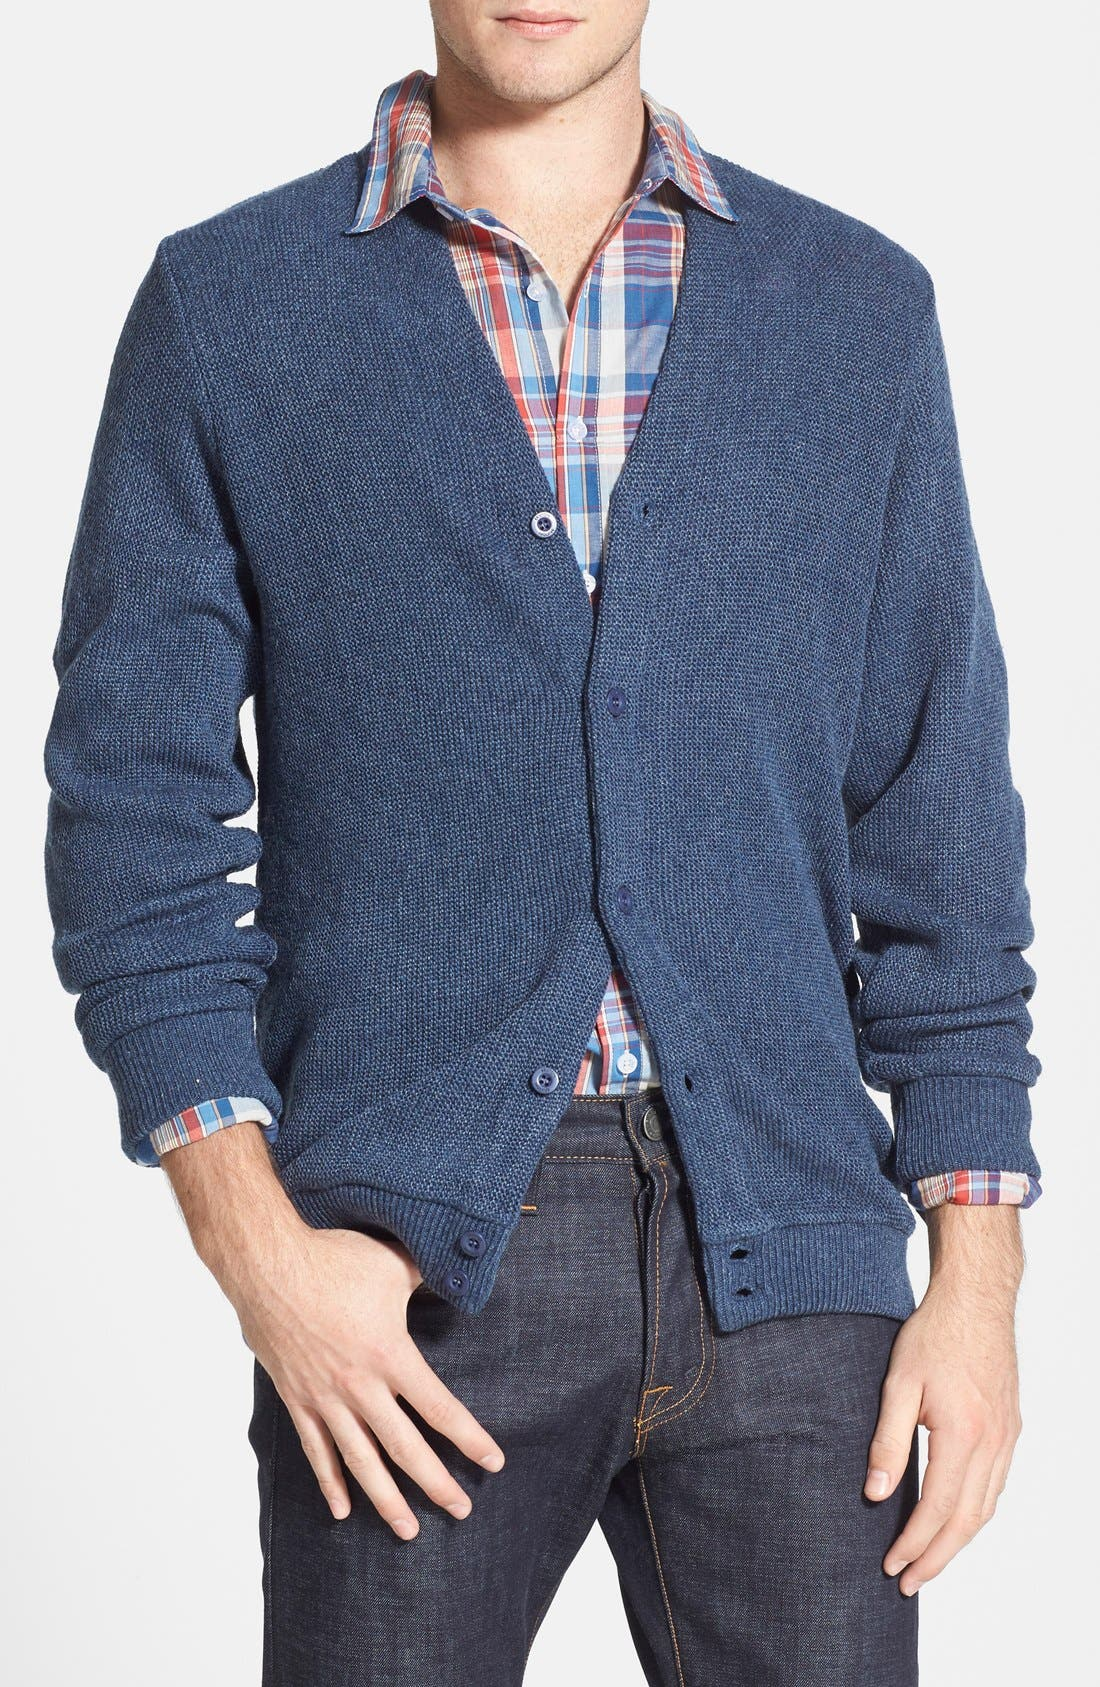 BRIXTON,                             'Miles' Cardigan Sweater,                             Main thumbnail 1, color,                             468